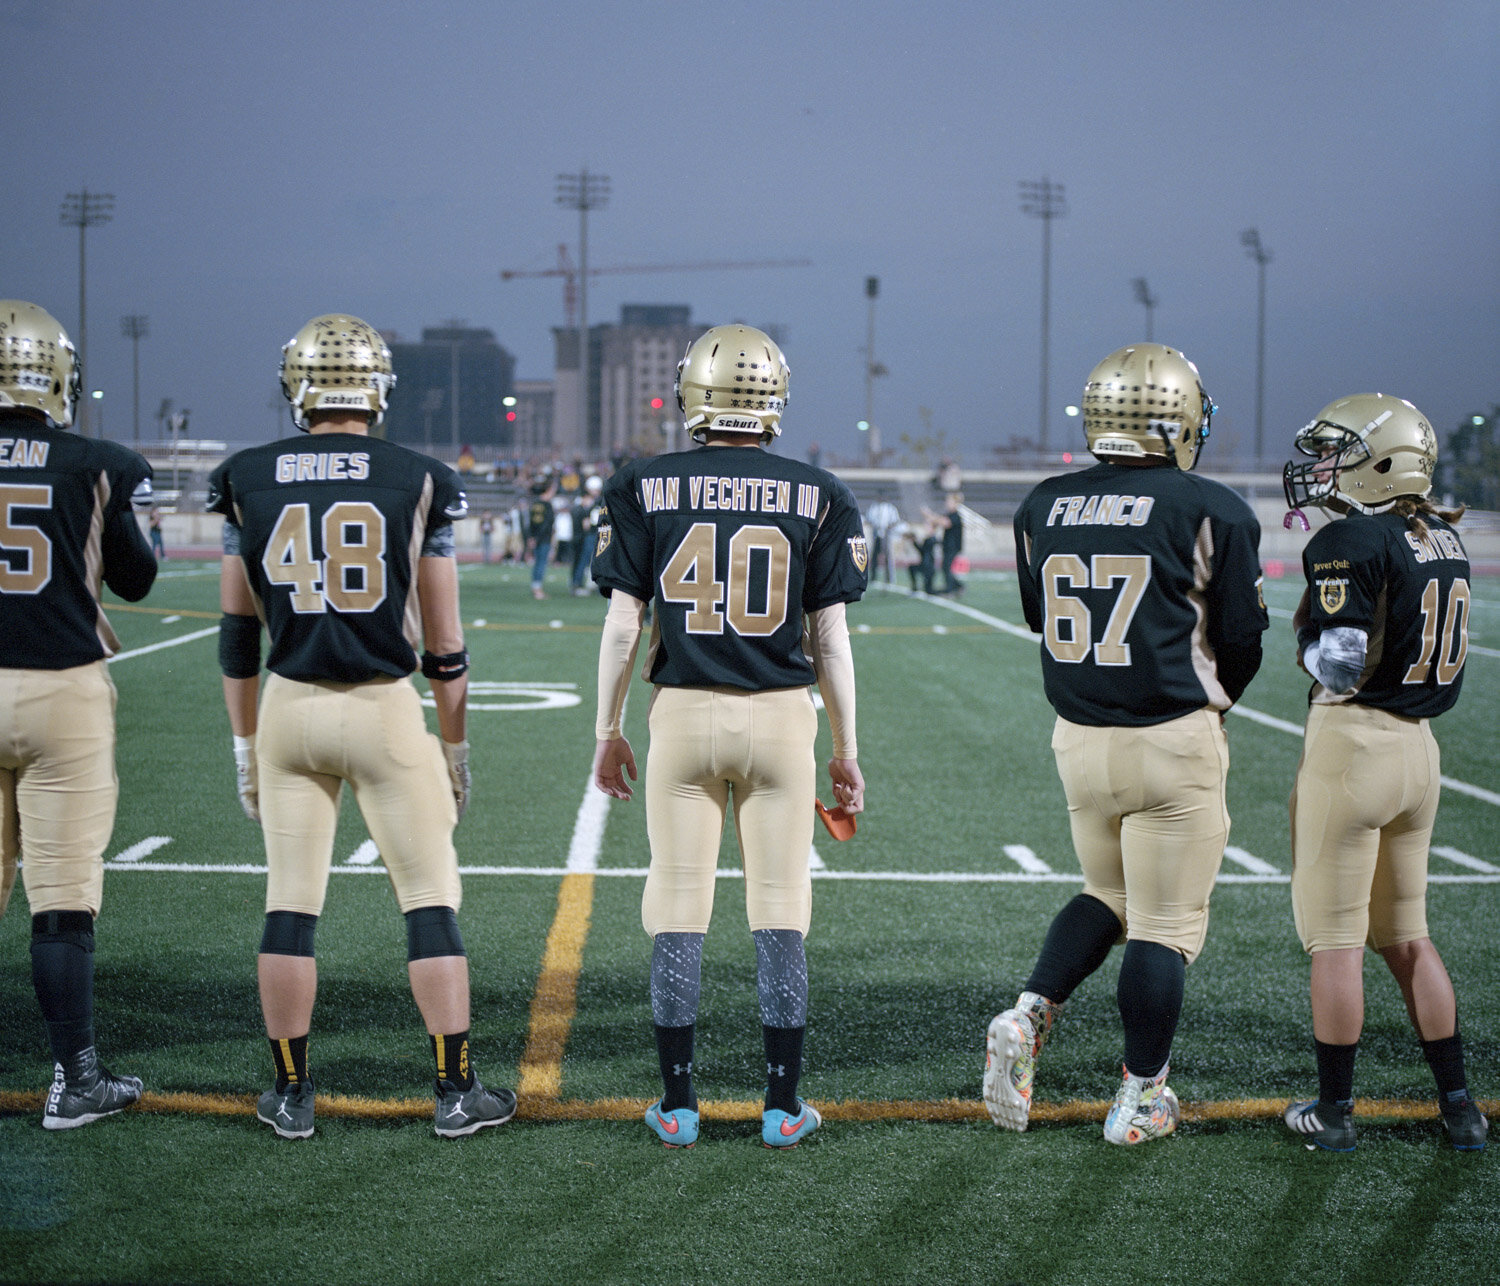 Football players from the Camp Humphrey Highschool on the sideline during a game inside the biggest American Base in South Korea.